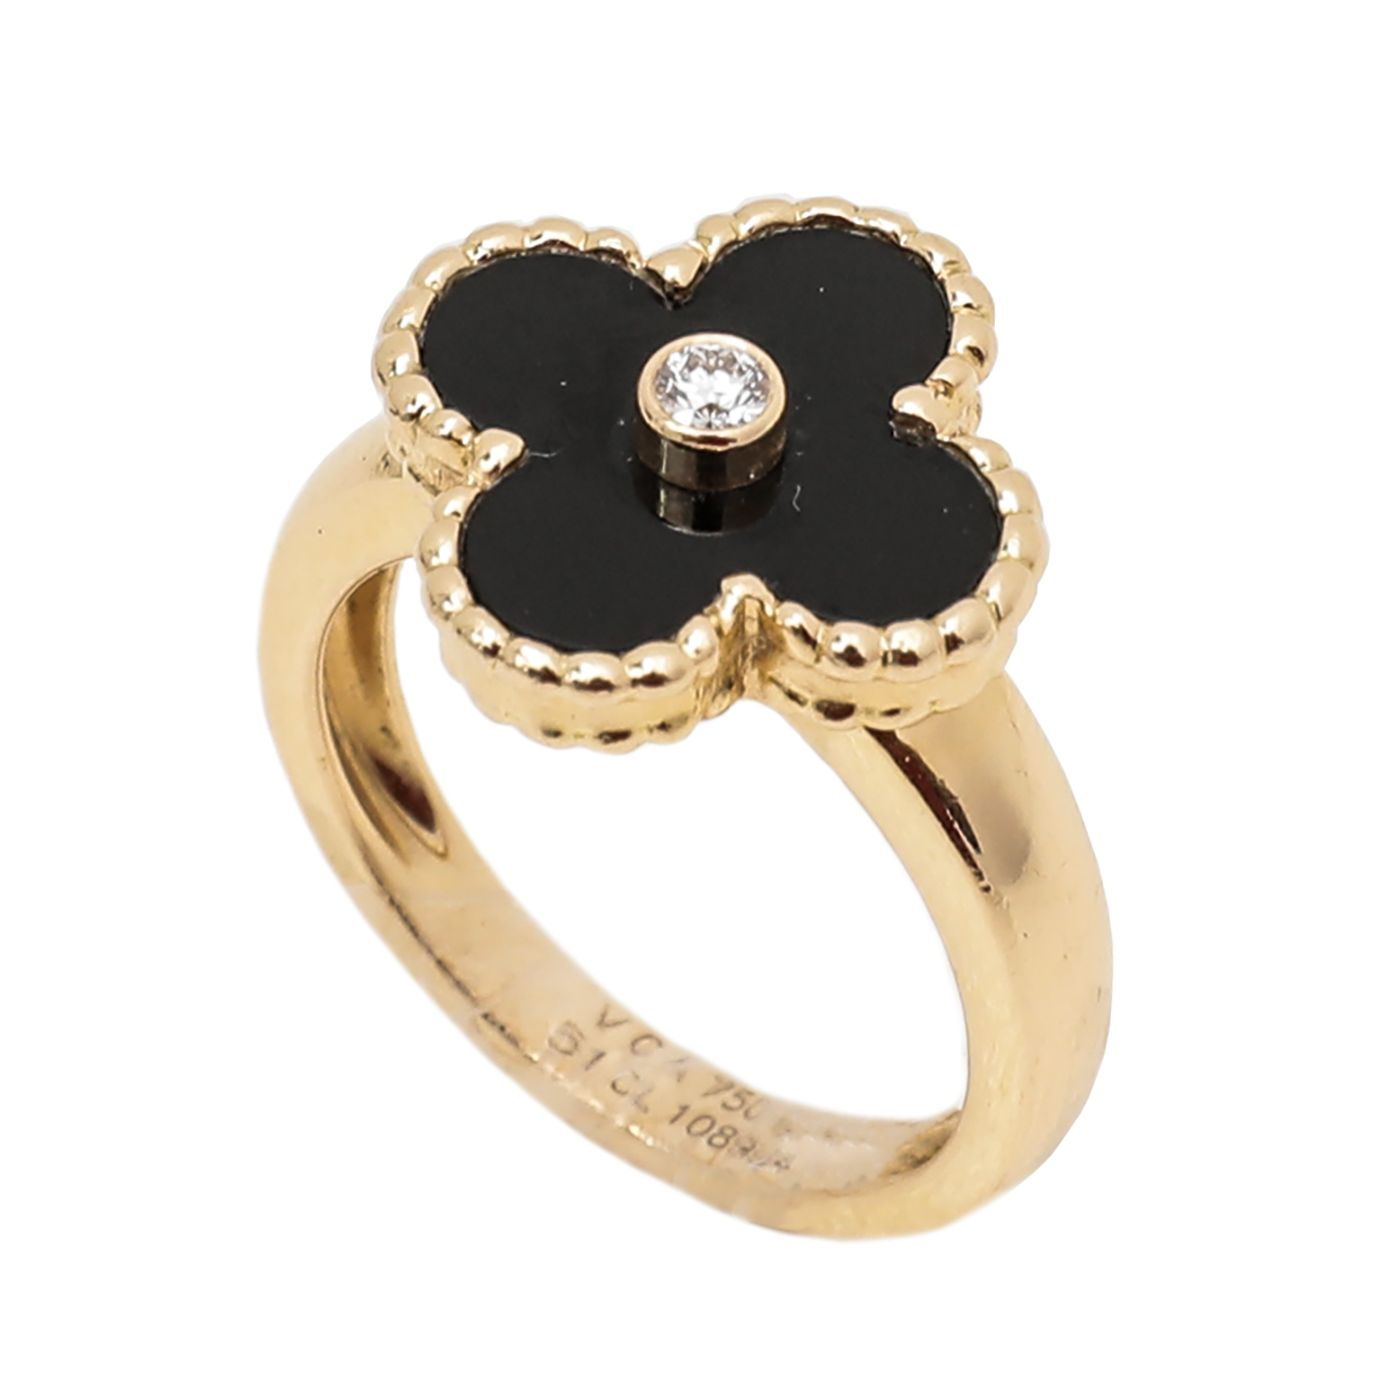 Van Cleef & Arpels 18K Yellow Gold Vintage Alhambra Onyx Diamond Ring 51